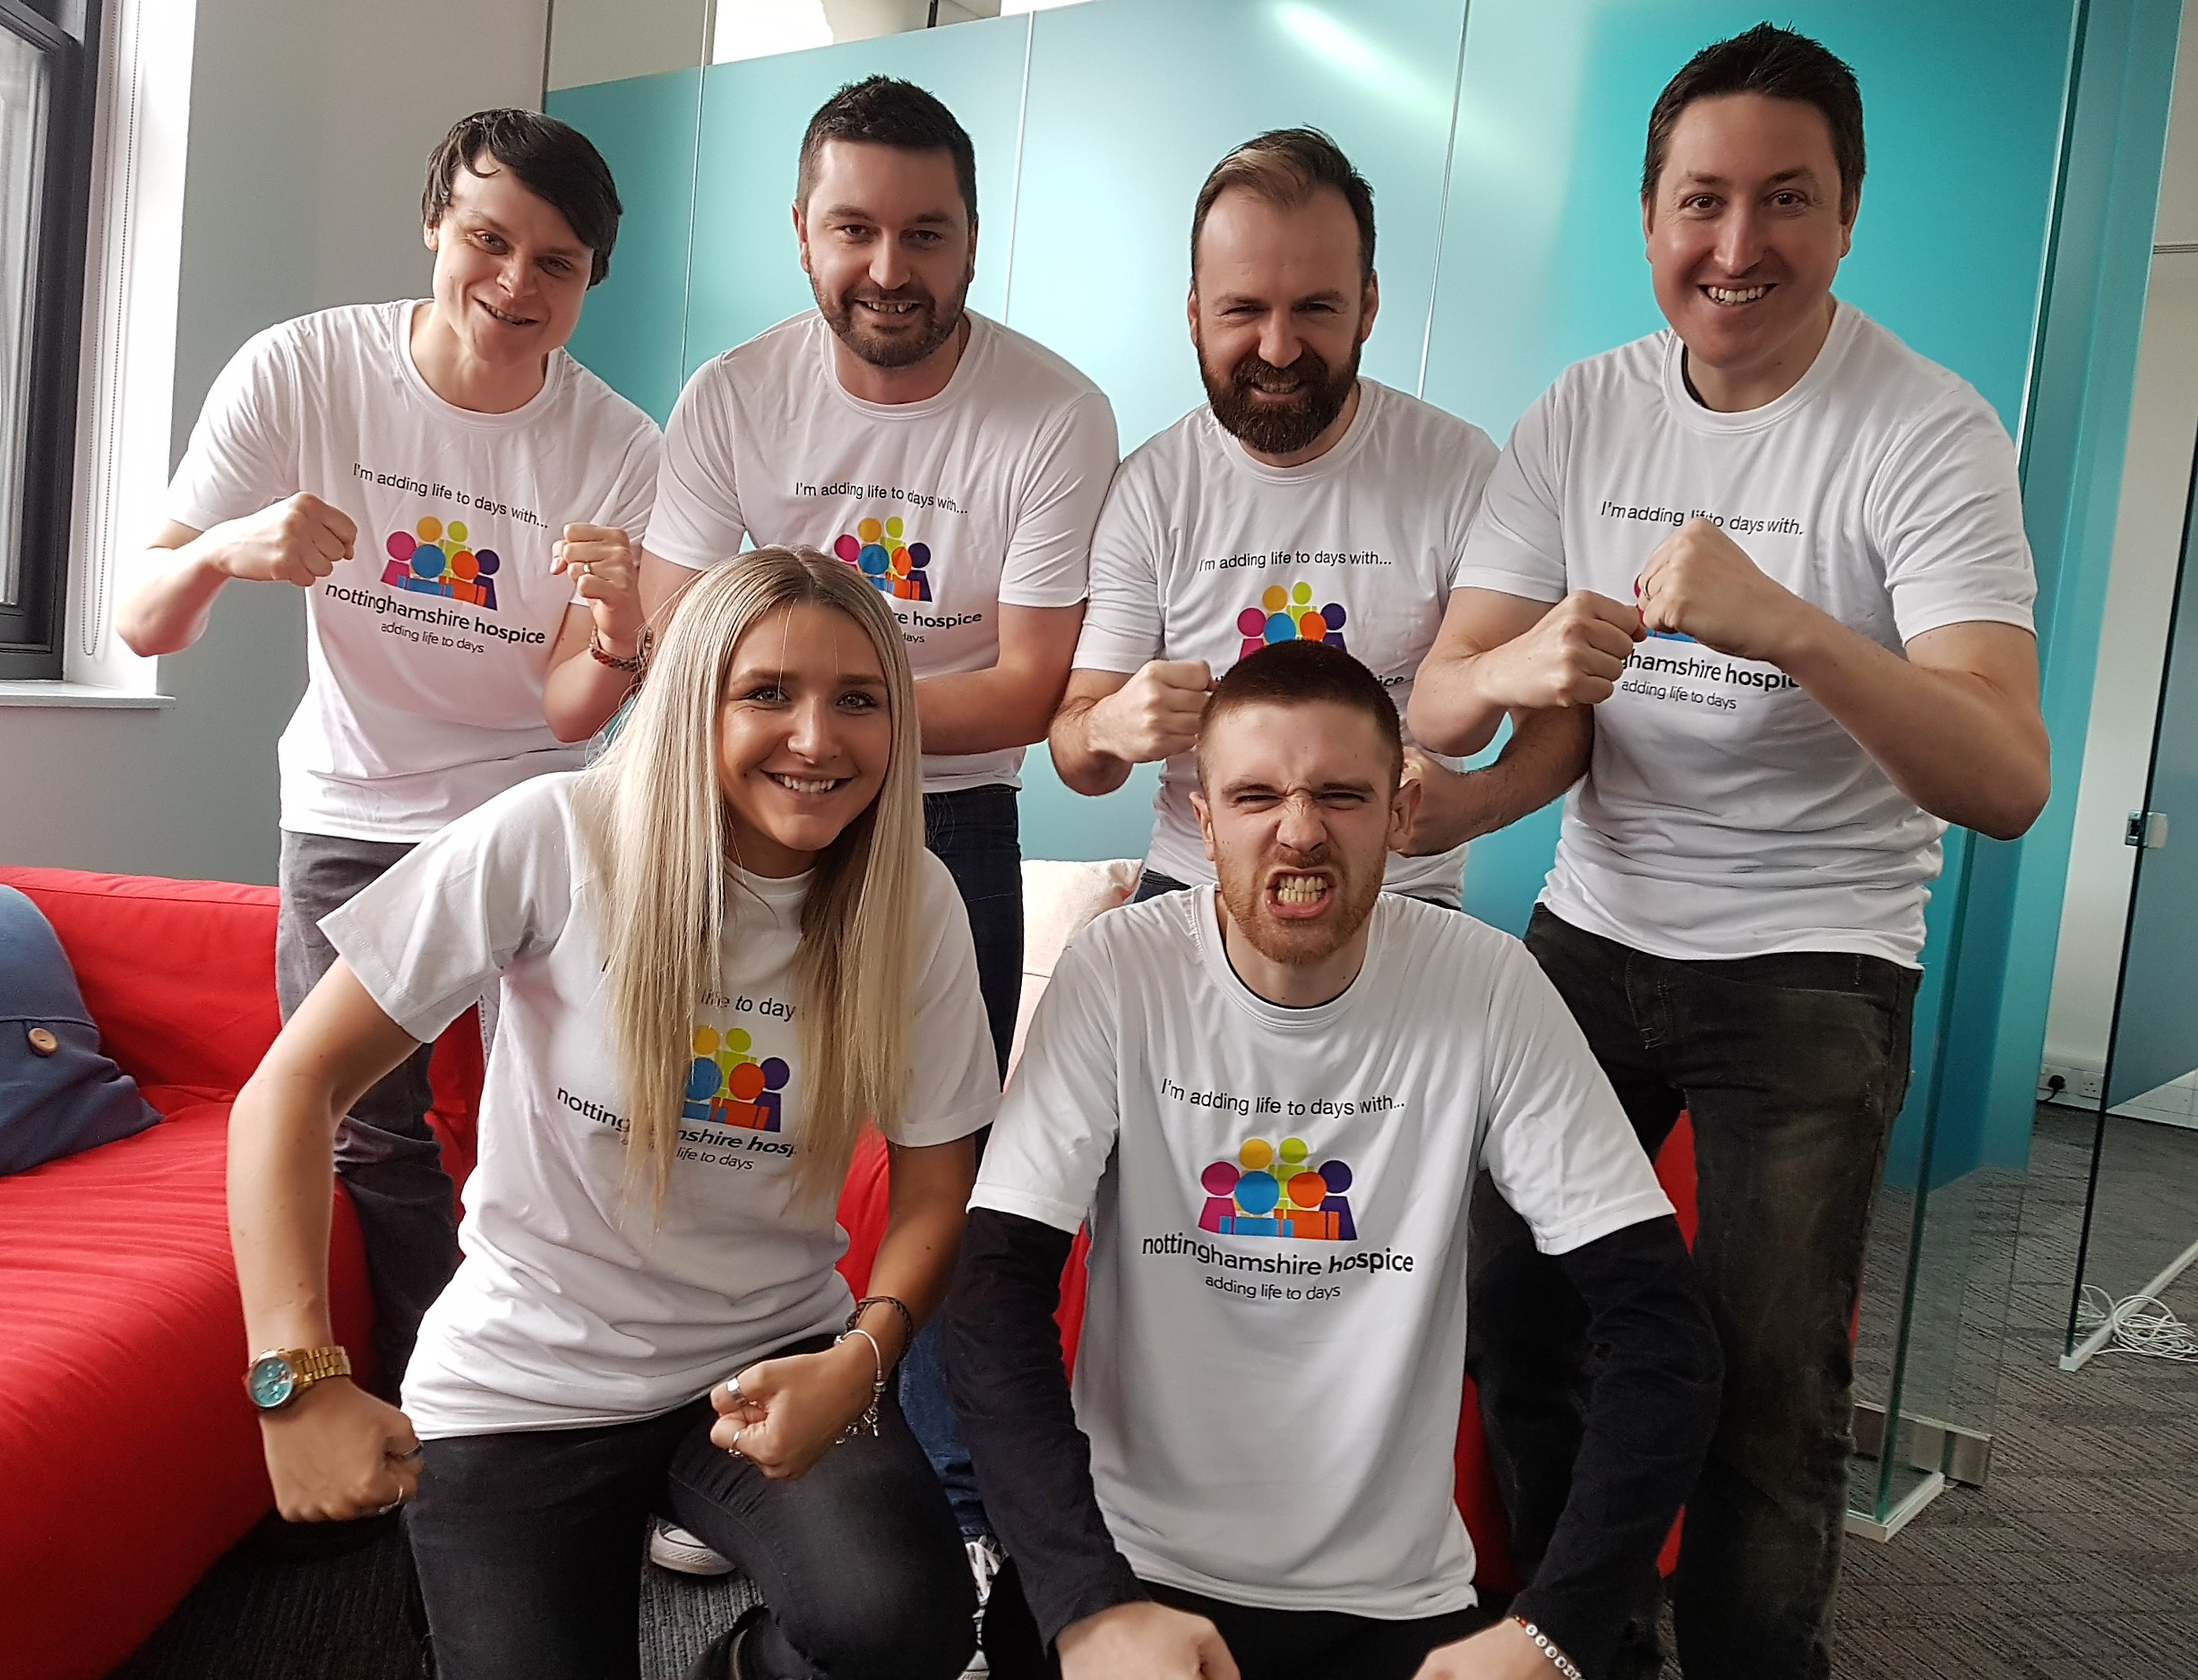 A seven-strong team from Nottinghamshire company VIA are competing in the Tough Mudder 2018 - Penguin PR: public relations, media and communications